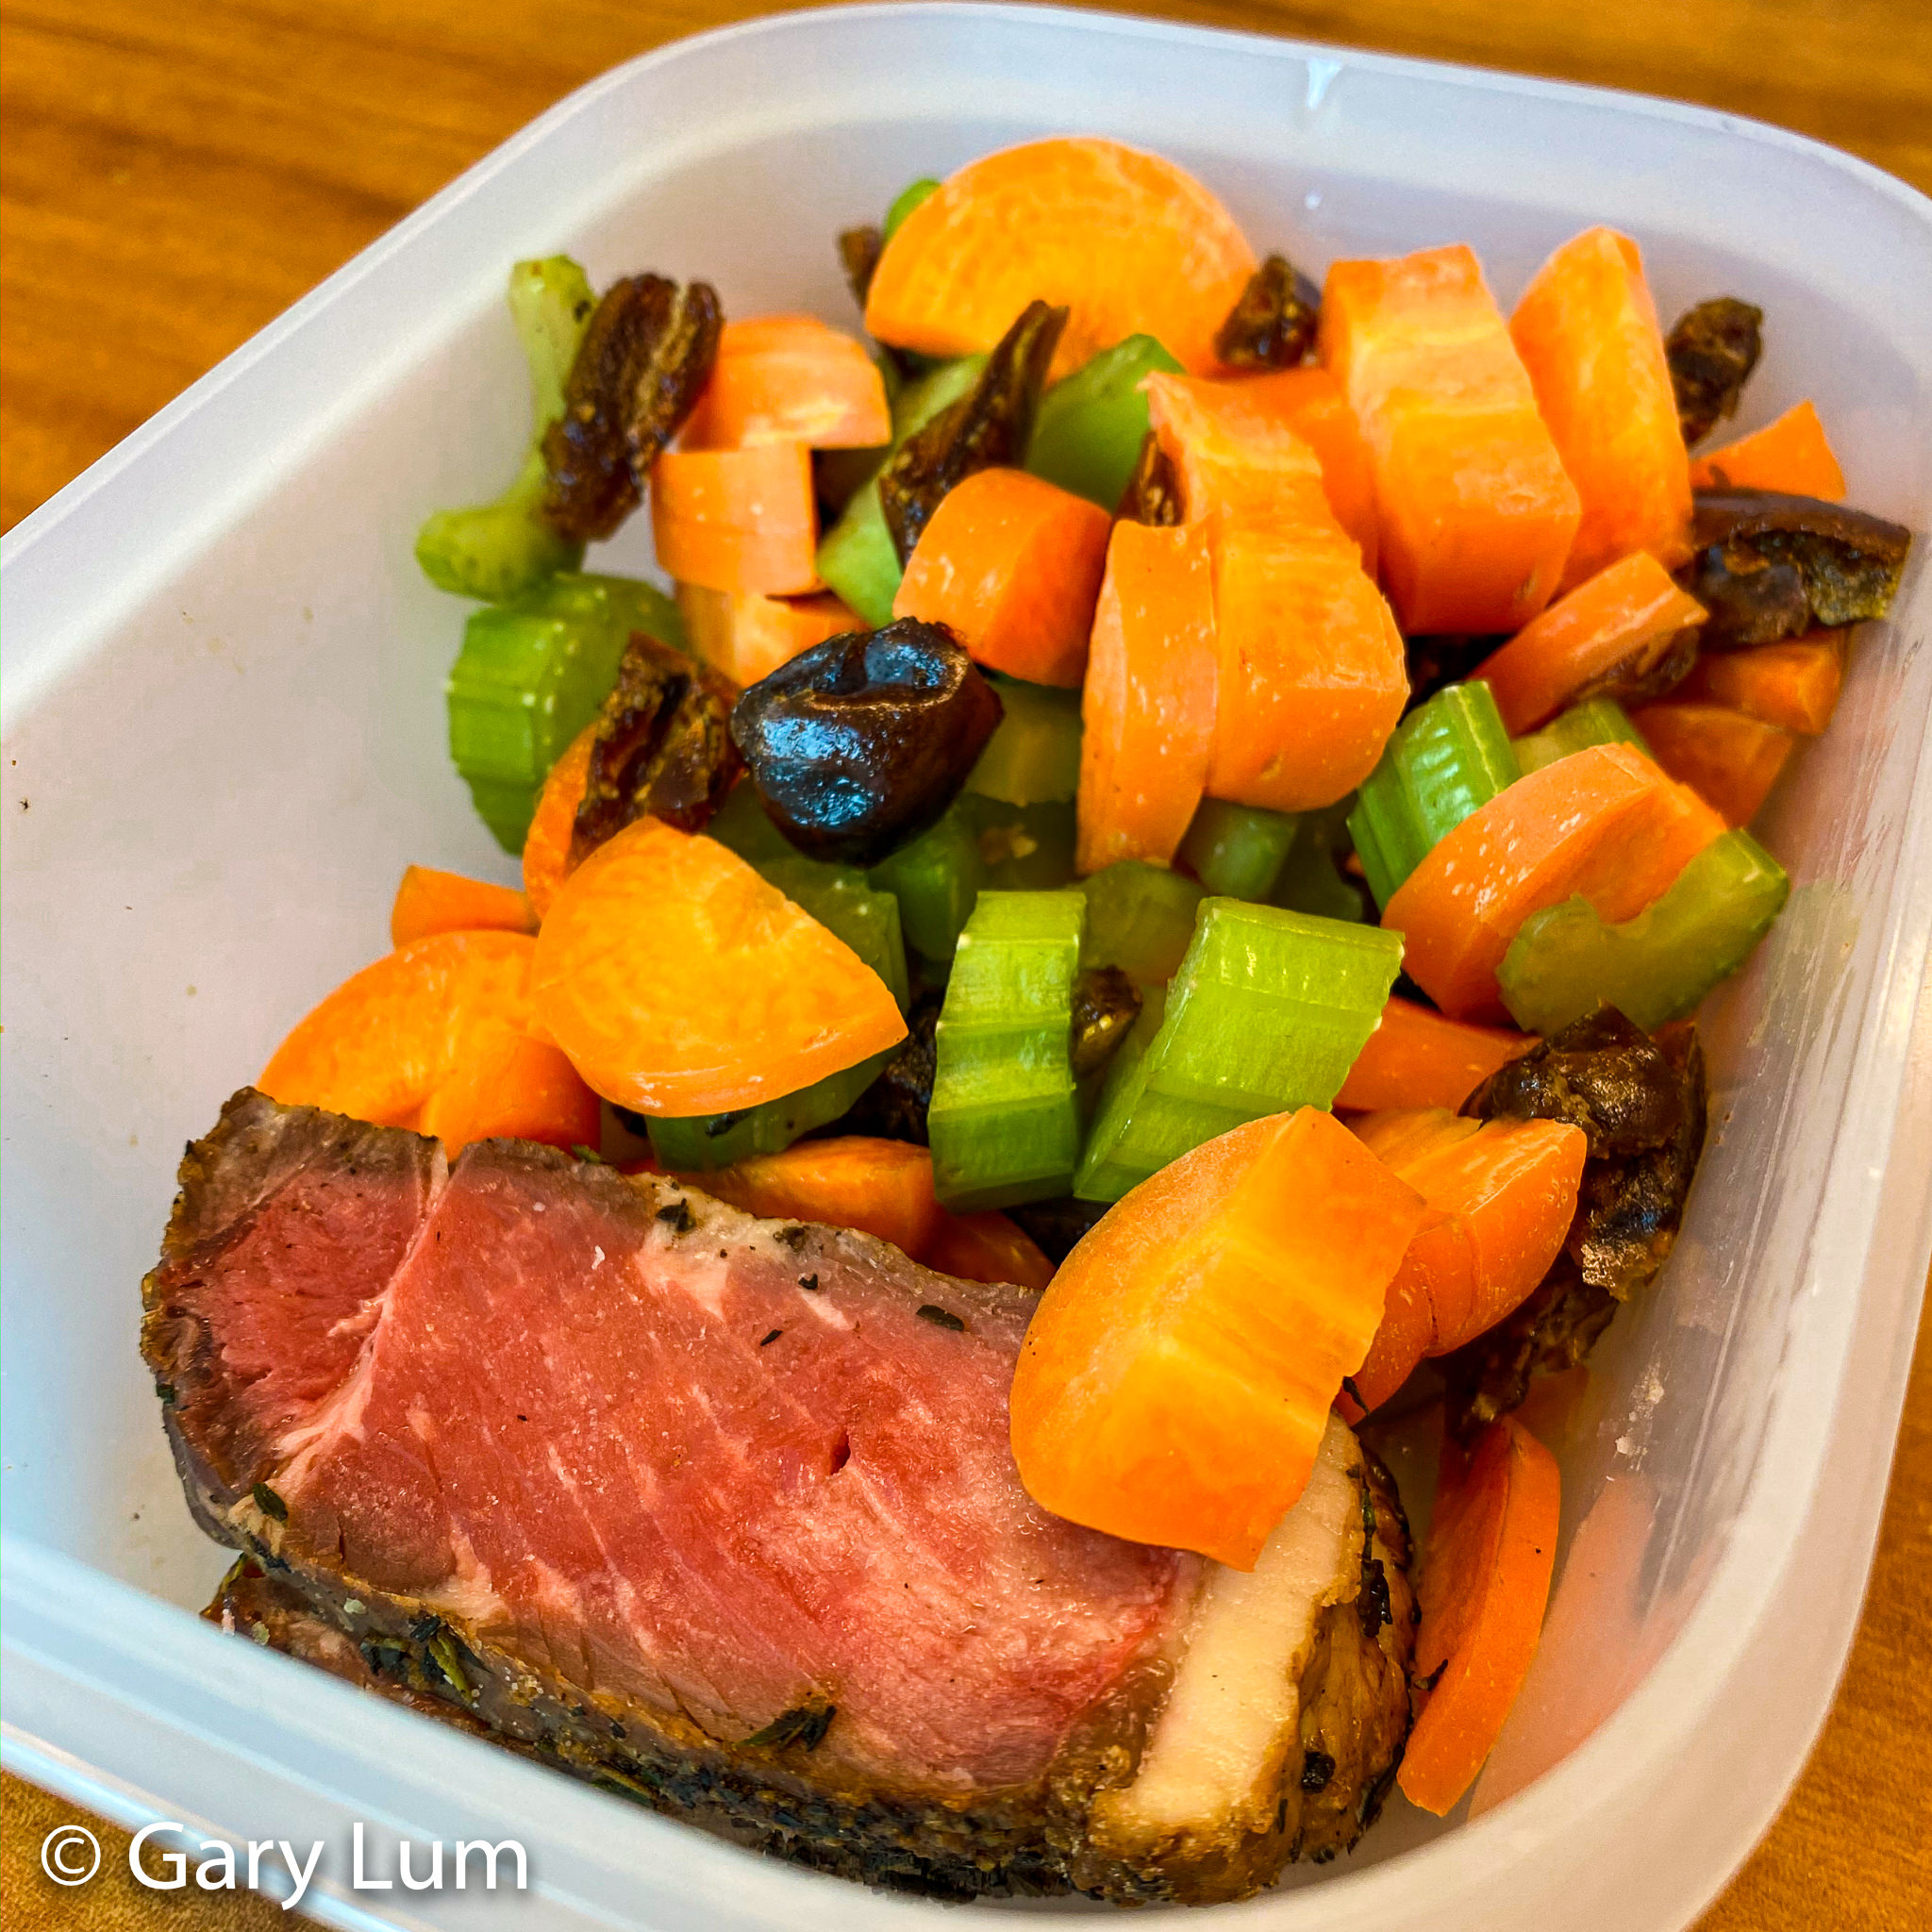 Sliced rare leftover beef, carrot, celery, and dates. Gary Lum.